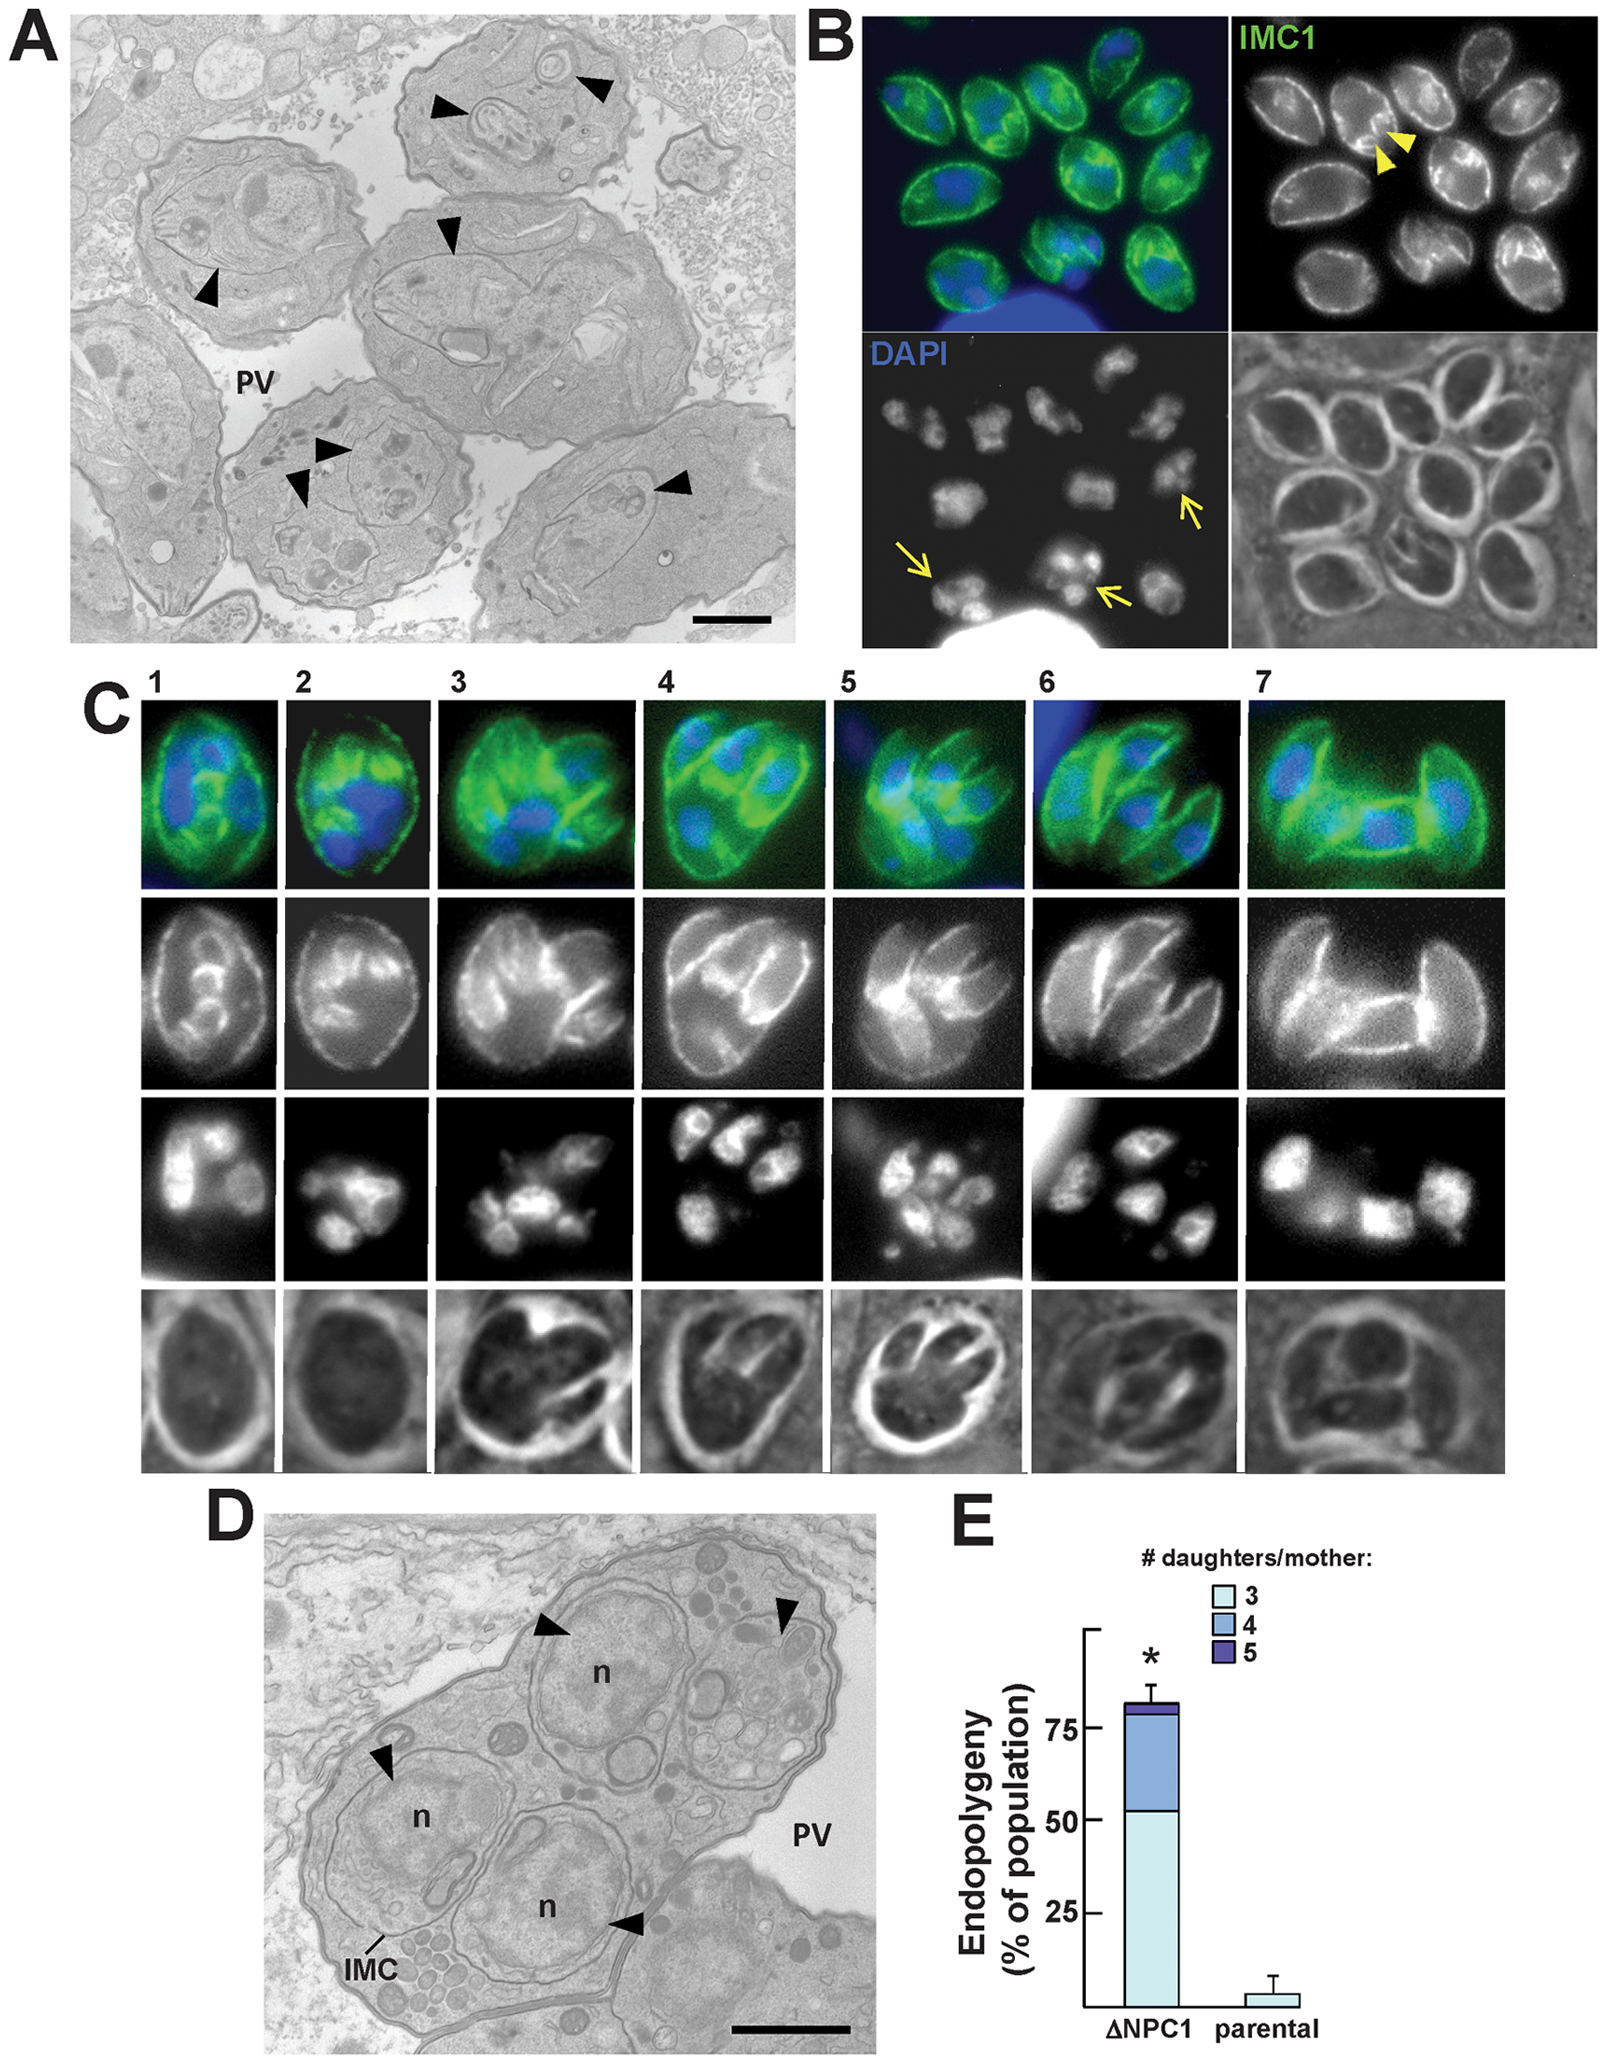 Peculiarities of replication of TgNCR1-deficient parasites.